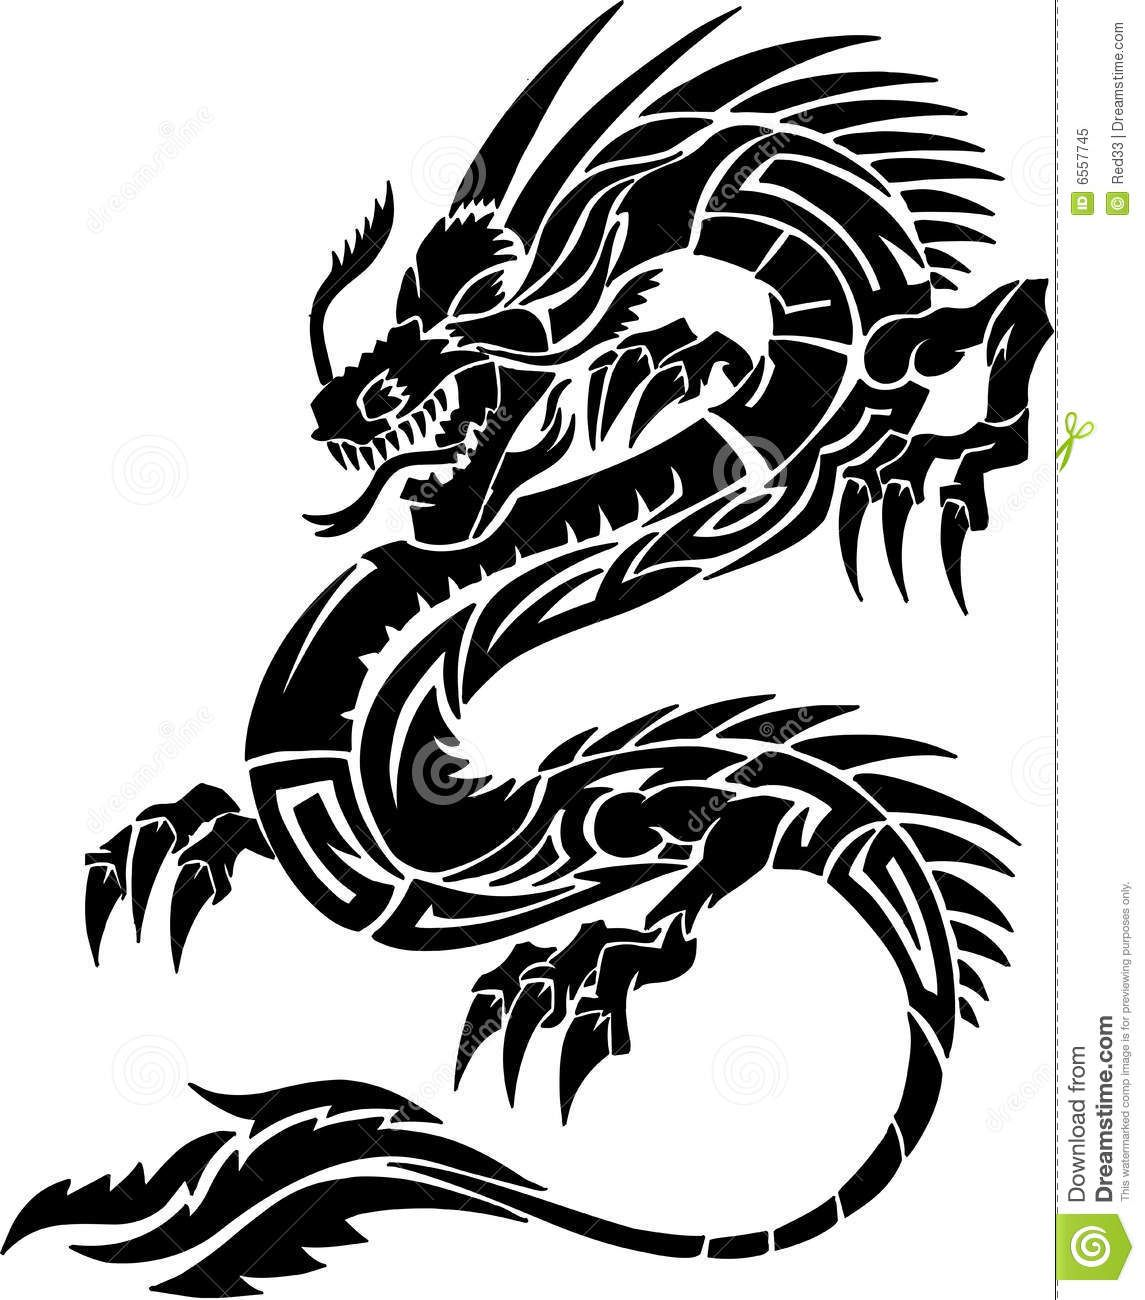 Tribal Tattoo Dragon Download From Over 68 Million High Quality Stock Photos Images Vectors Sig Celtic Dragon Tattoos Tribal Dragon Tattoos Tribal Tattoos